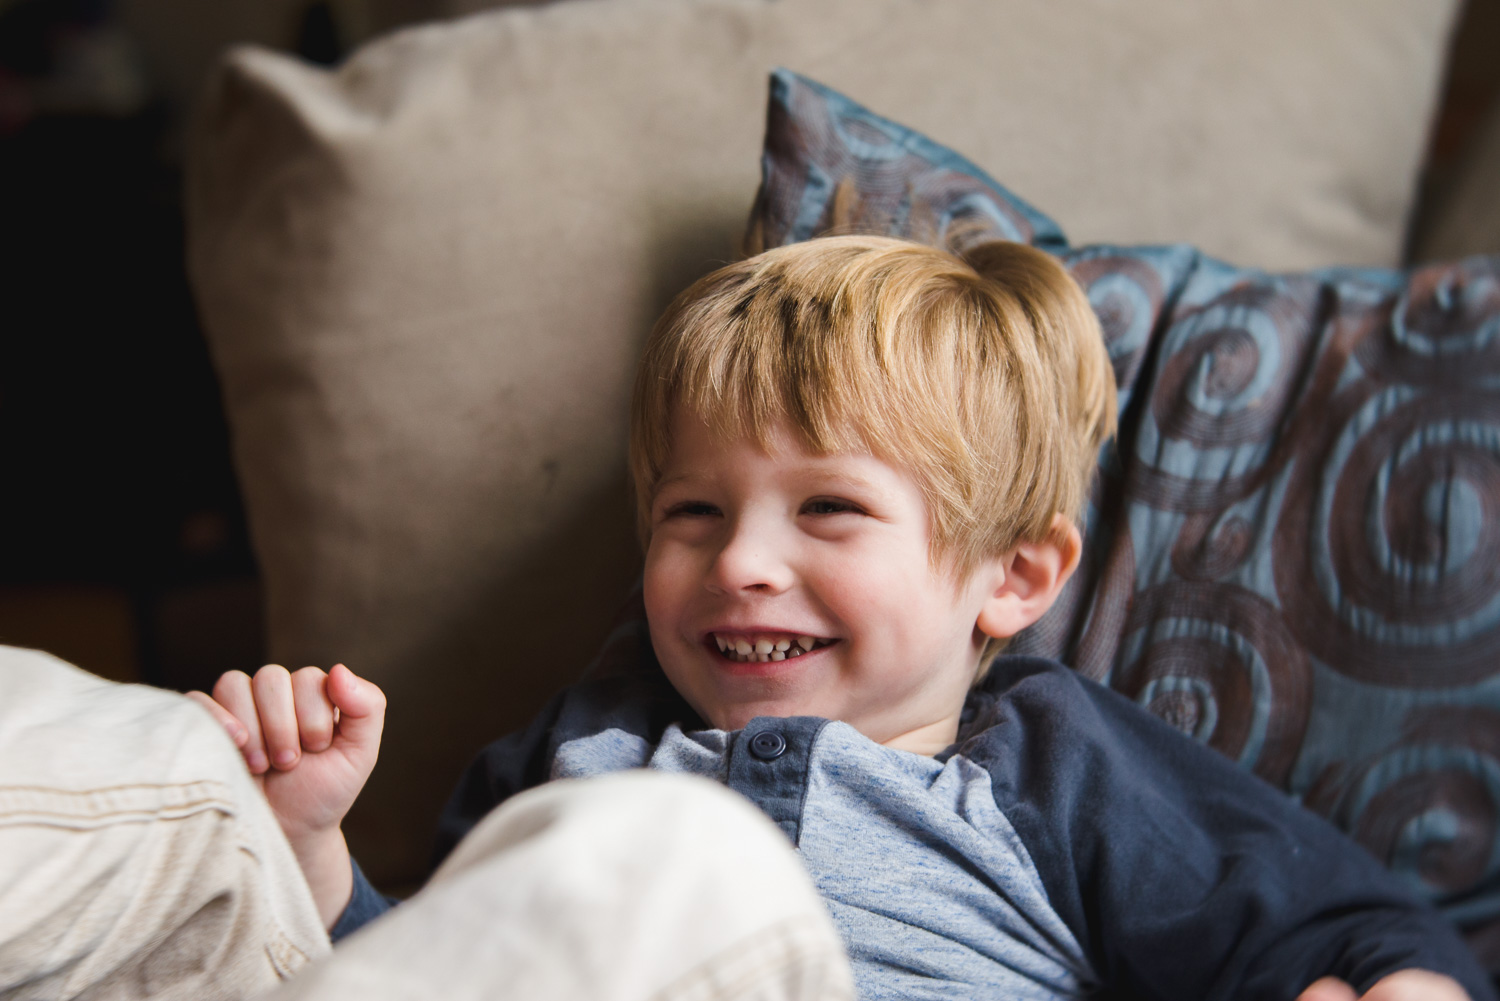 Portrait of a little boy laughing on the couch.